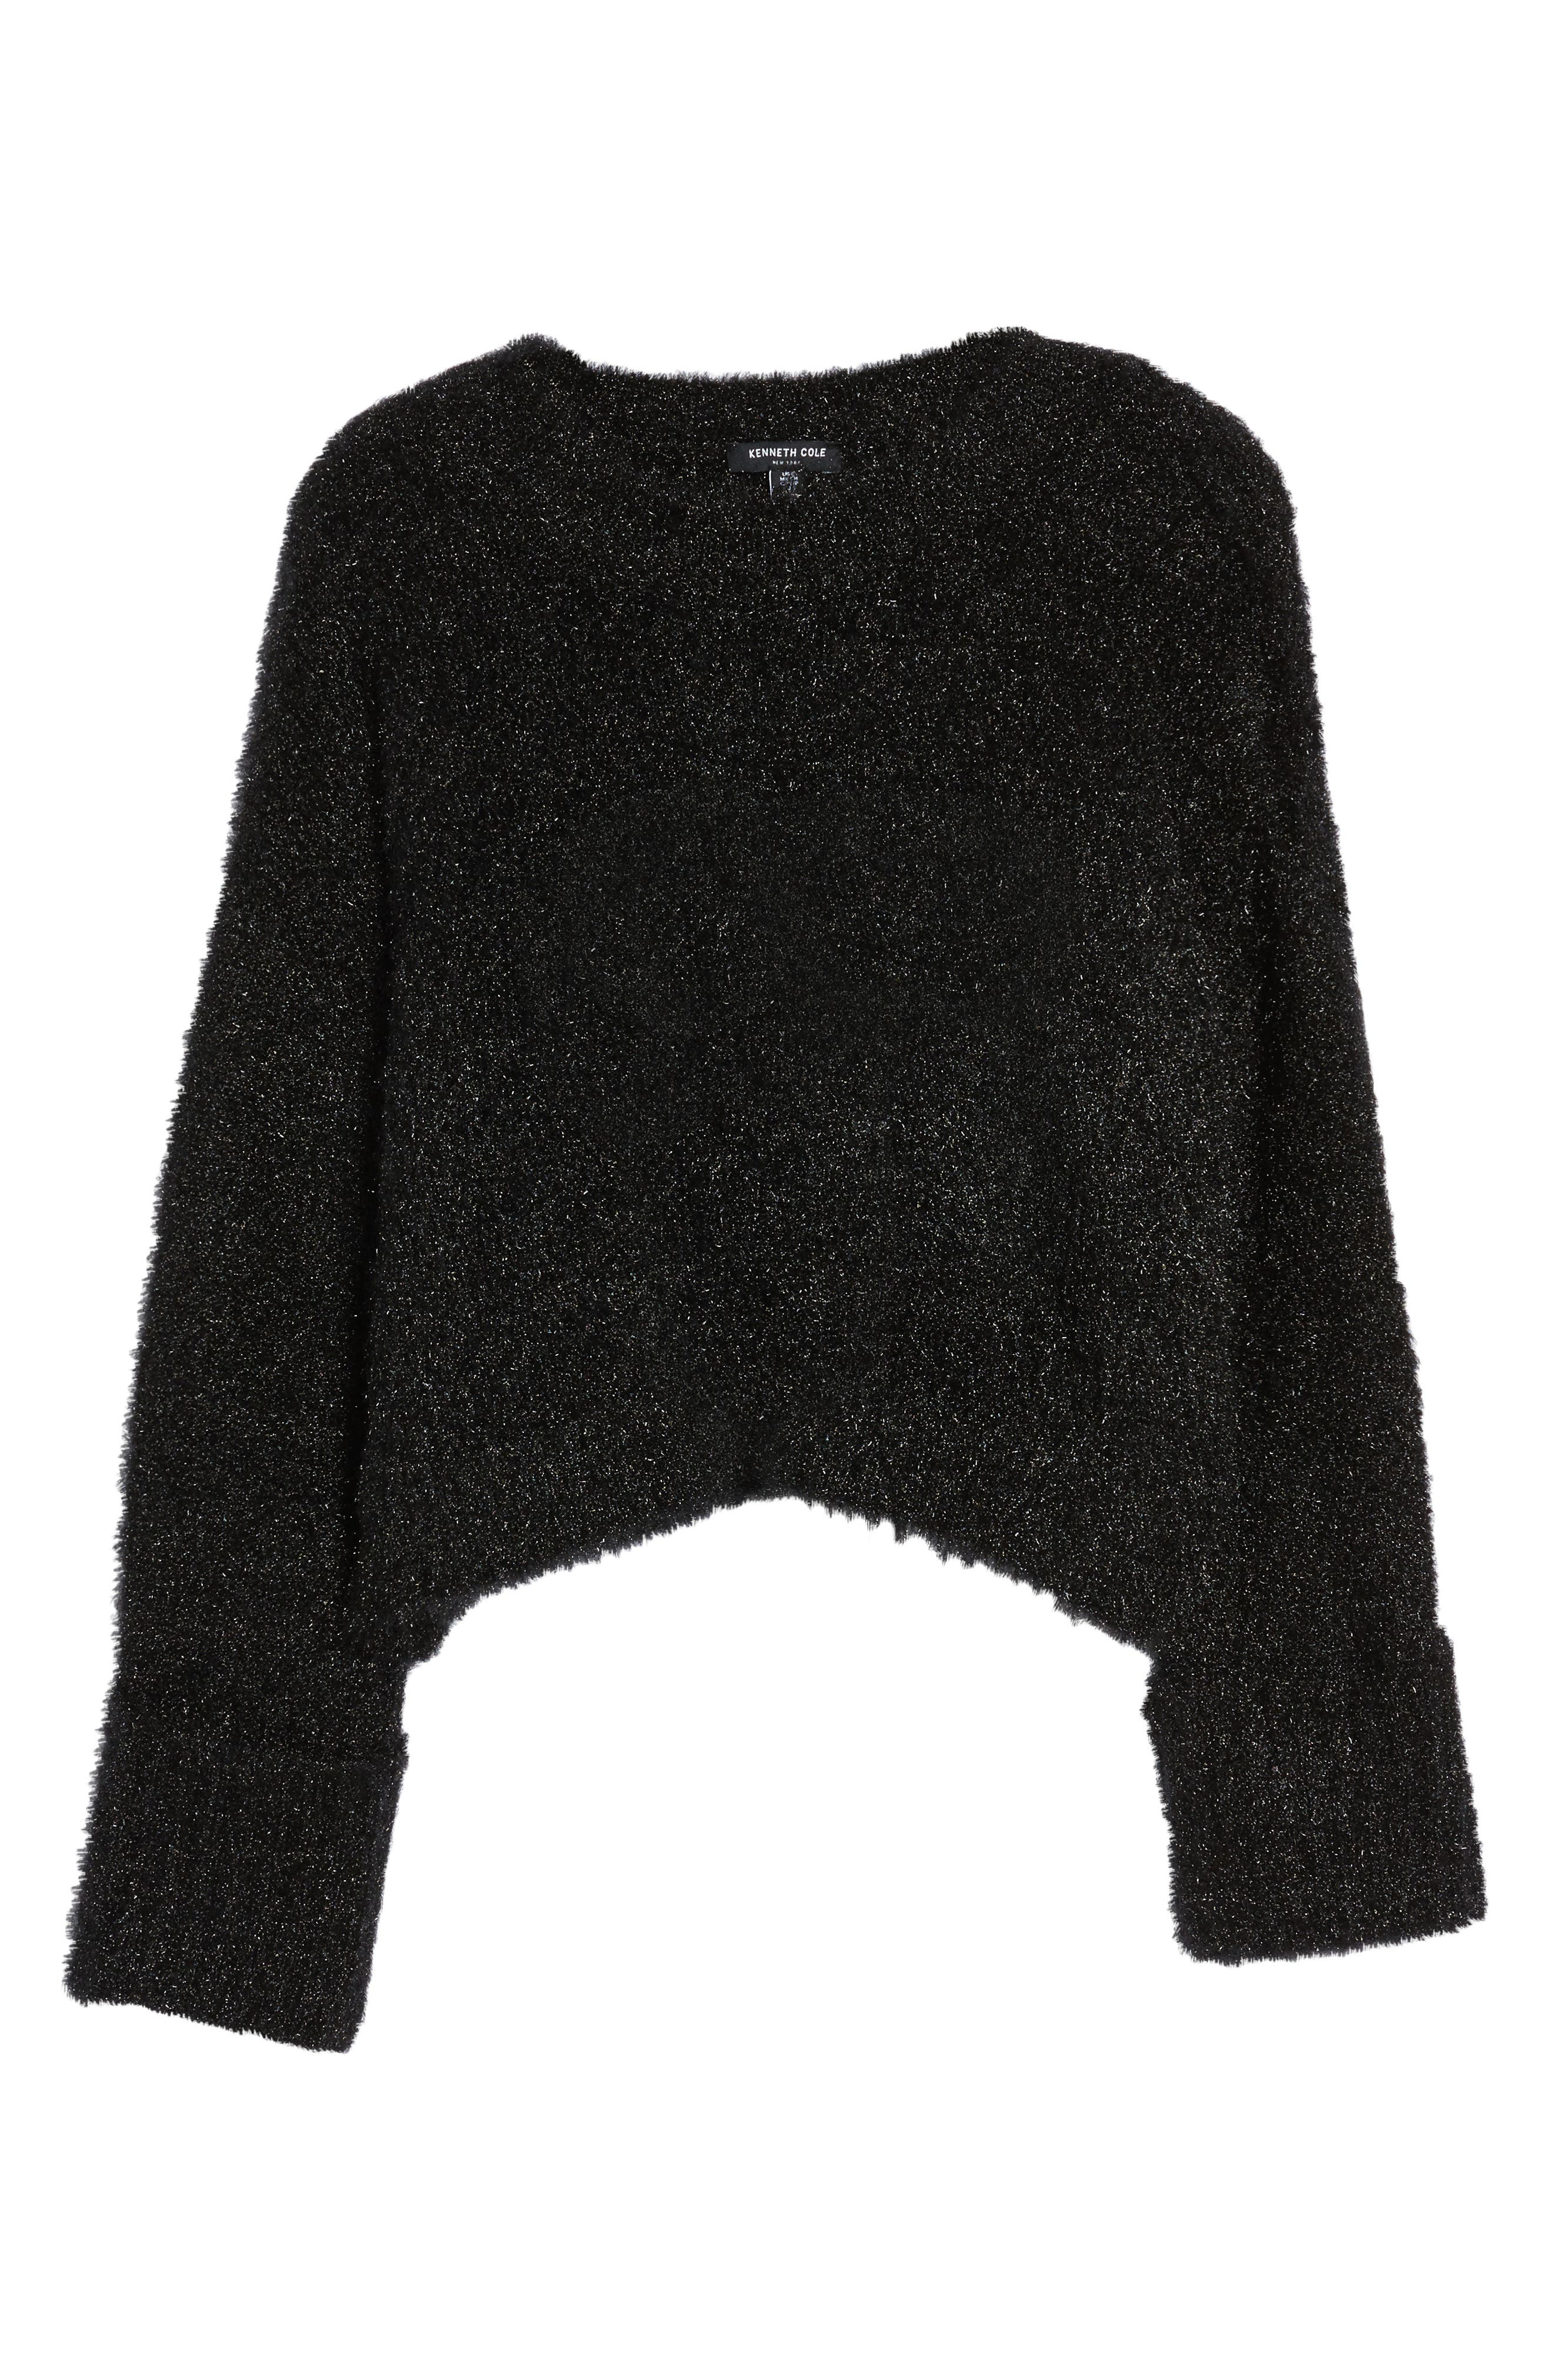 Large Cuff Crop Sweater,                             Alternate thumbnail 6, color,                             001